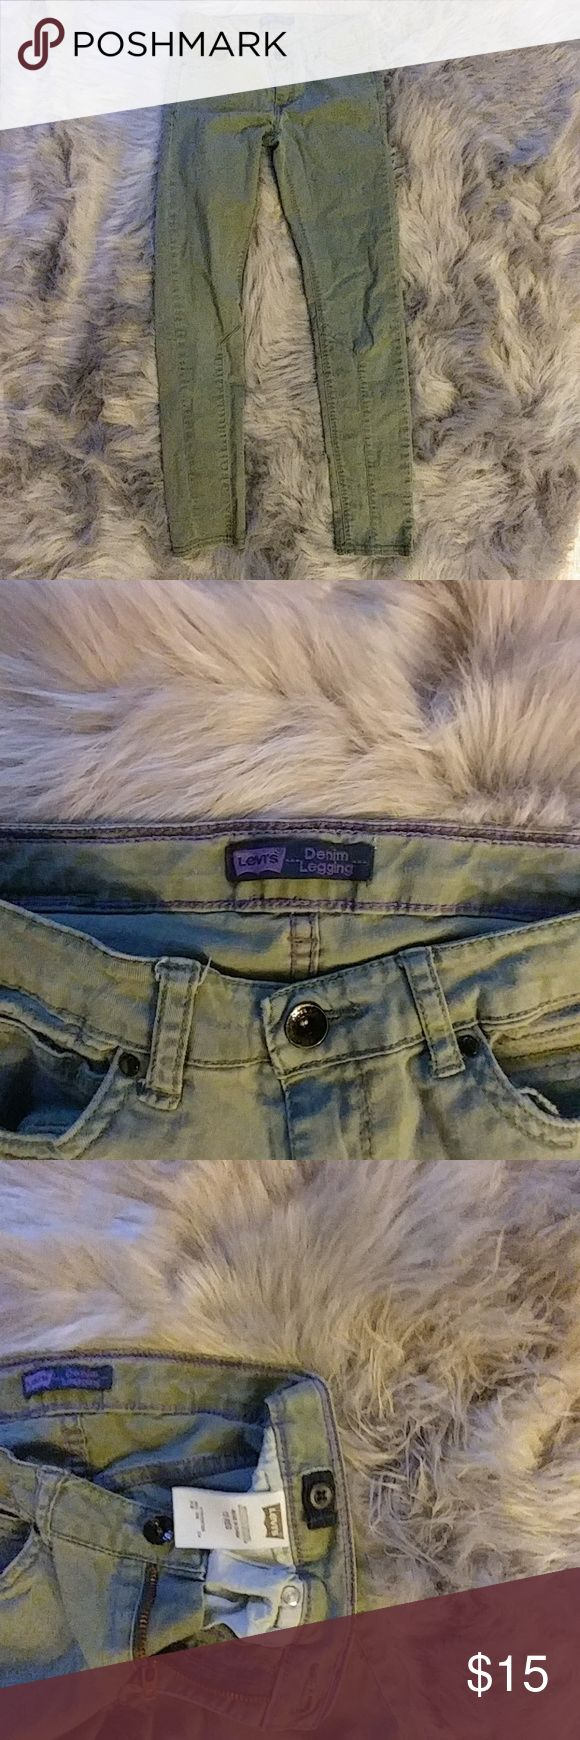 Levis Denim Leggins Levis Denim Leggins Levi's Bottoms Jeans